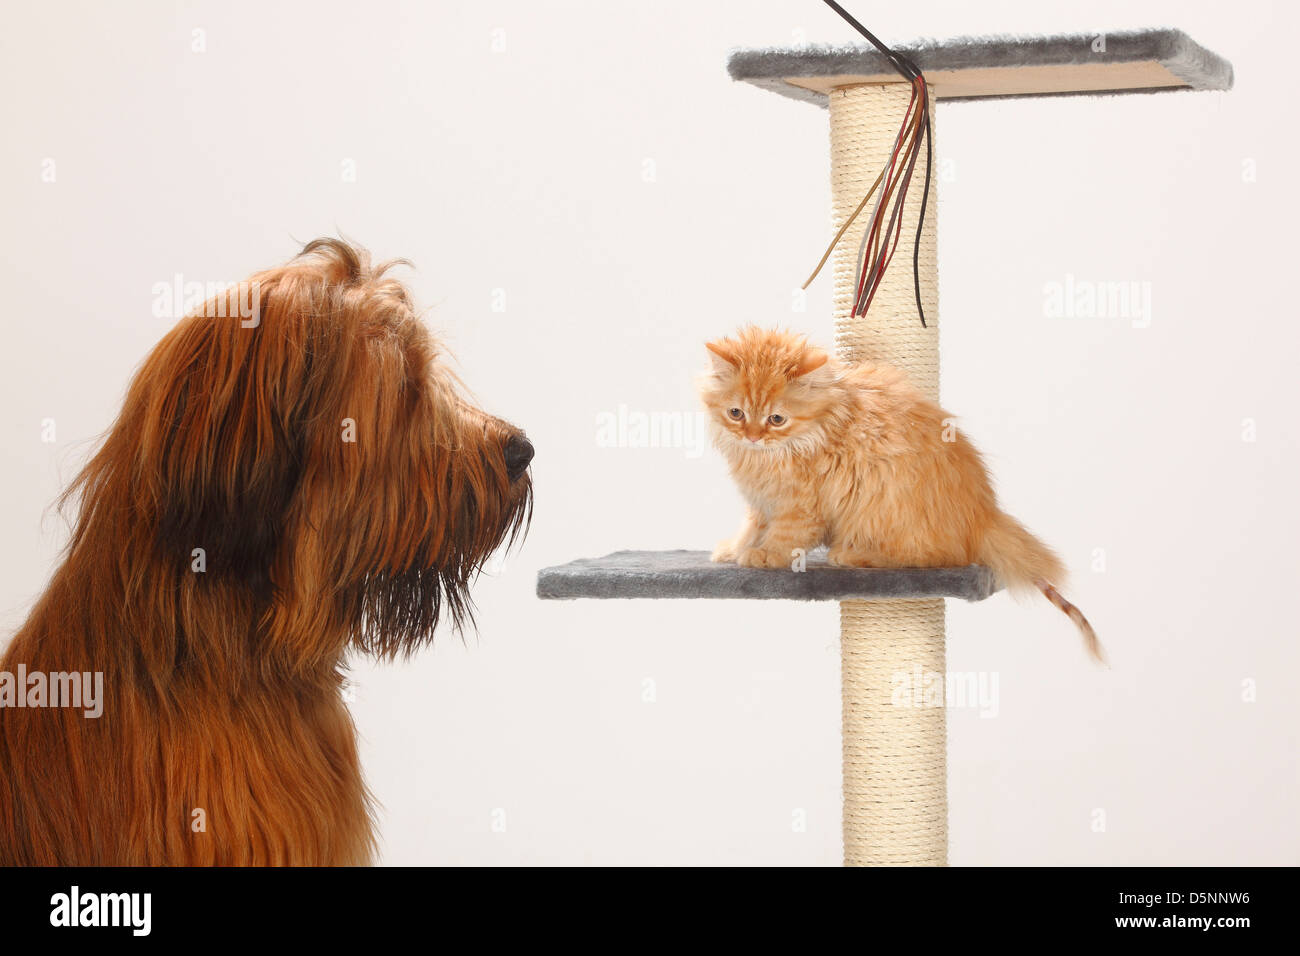 Briard, 1 year, and Domestic Cat, kitten / Berger de Brie, side - Stock Image